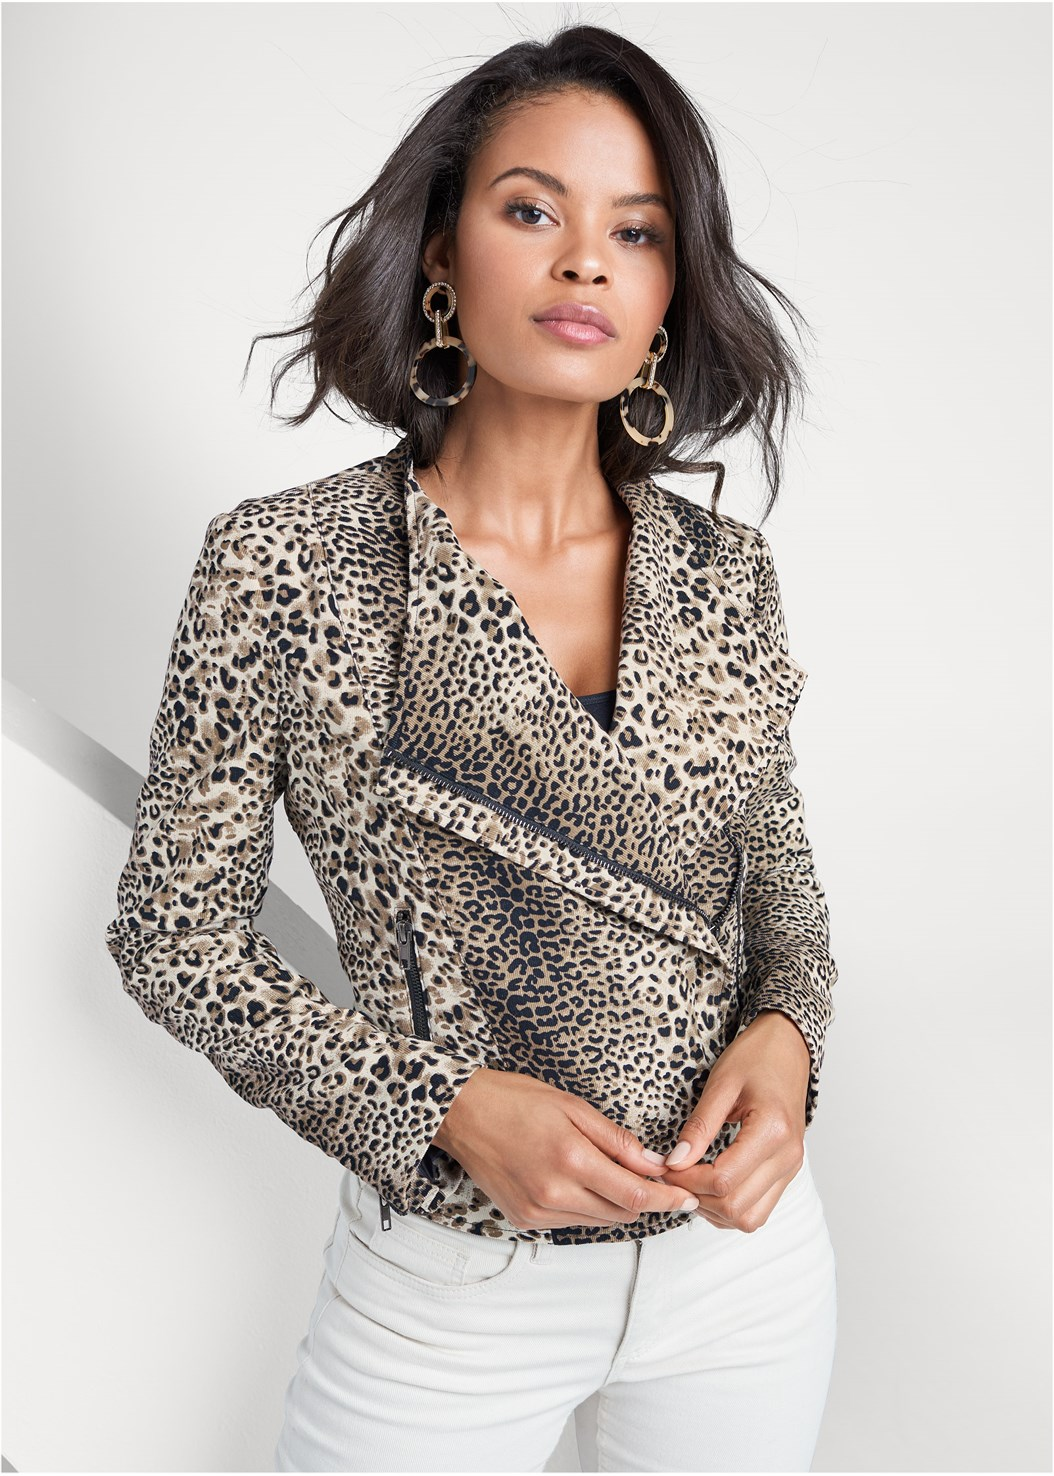 Leopard Print Moto Jacket,Seamless Cami,Lace Cami,Mid Rise Color Skinny Jeans,Strapless Bra With Geo Lace,Studded Over The Knee Boots,Buckle Detail Booties